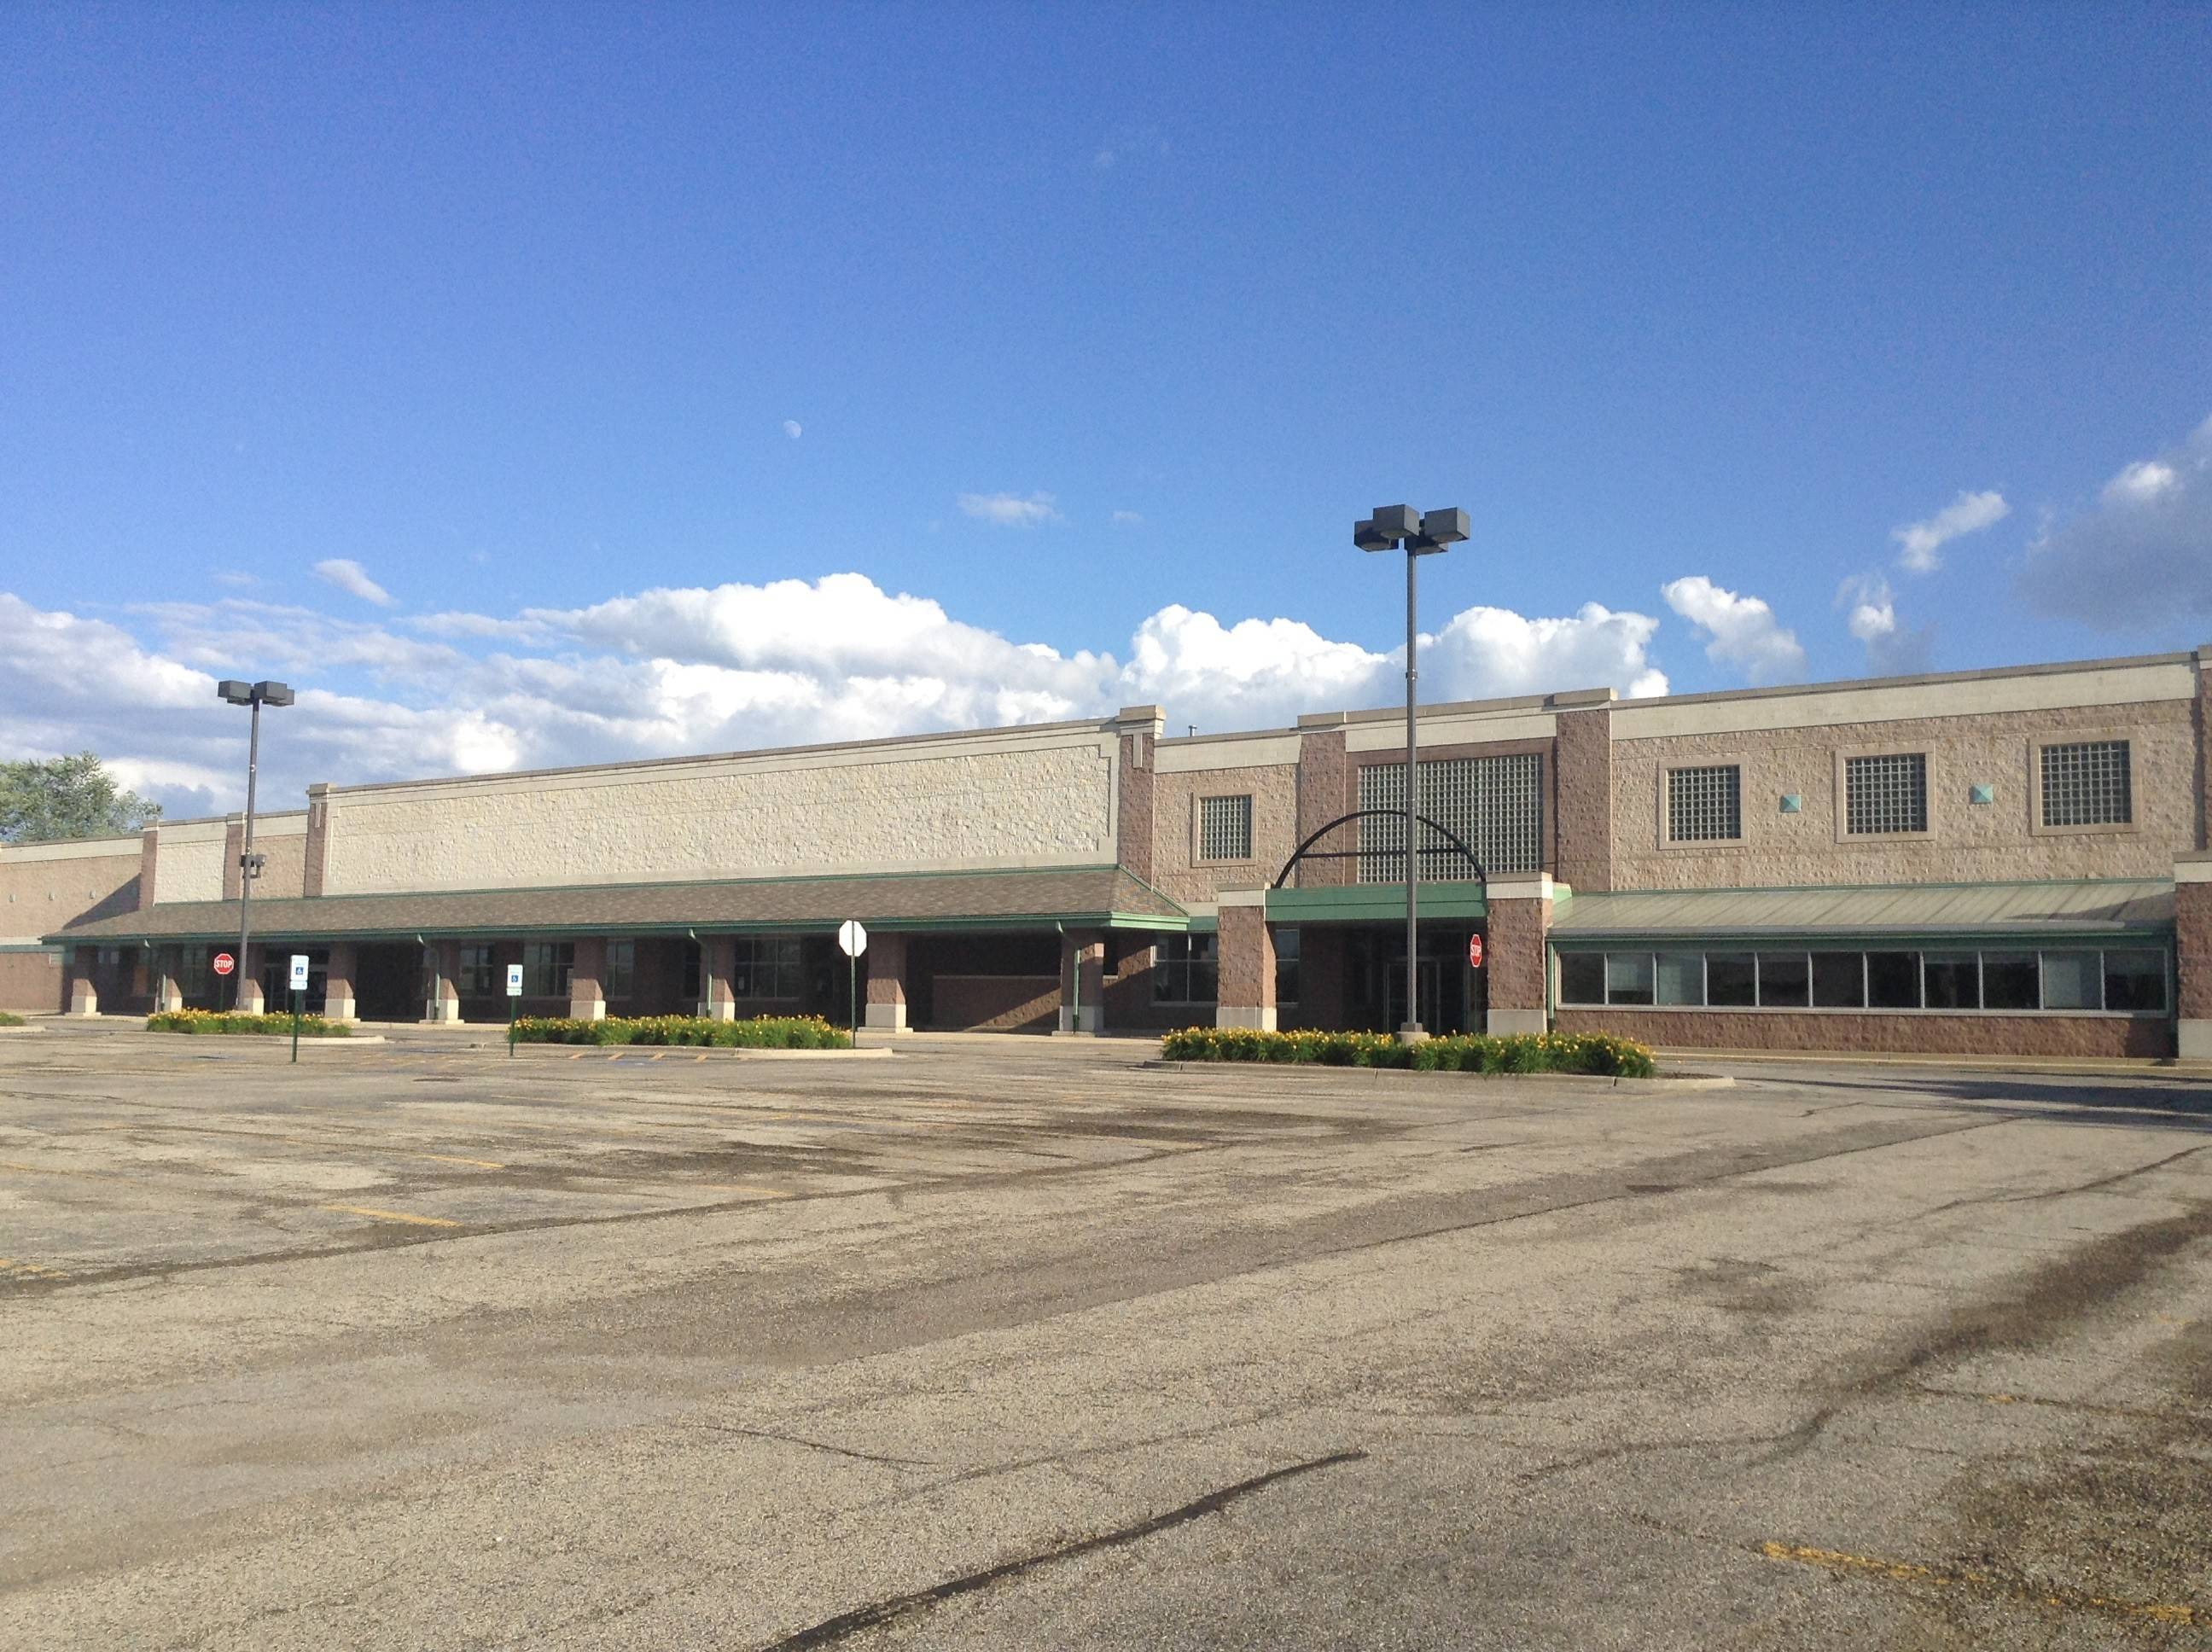 The site of the former Dominick's store in Wauconda has been empty since 2004.